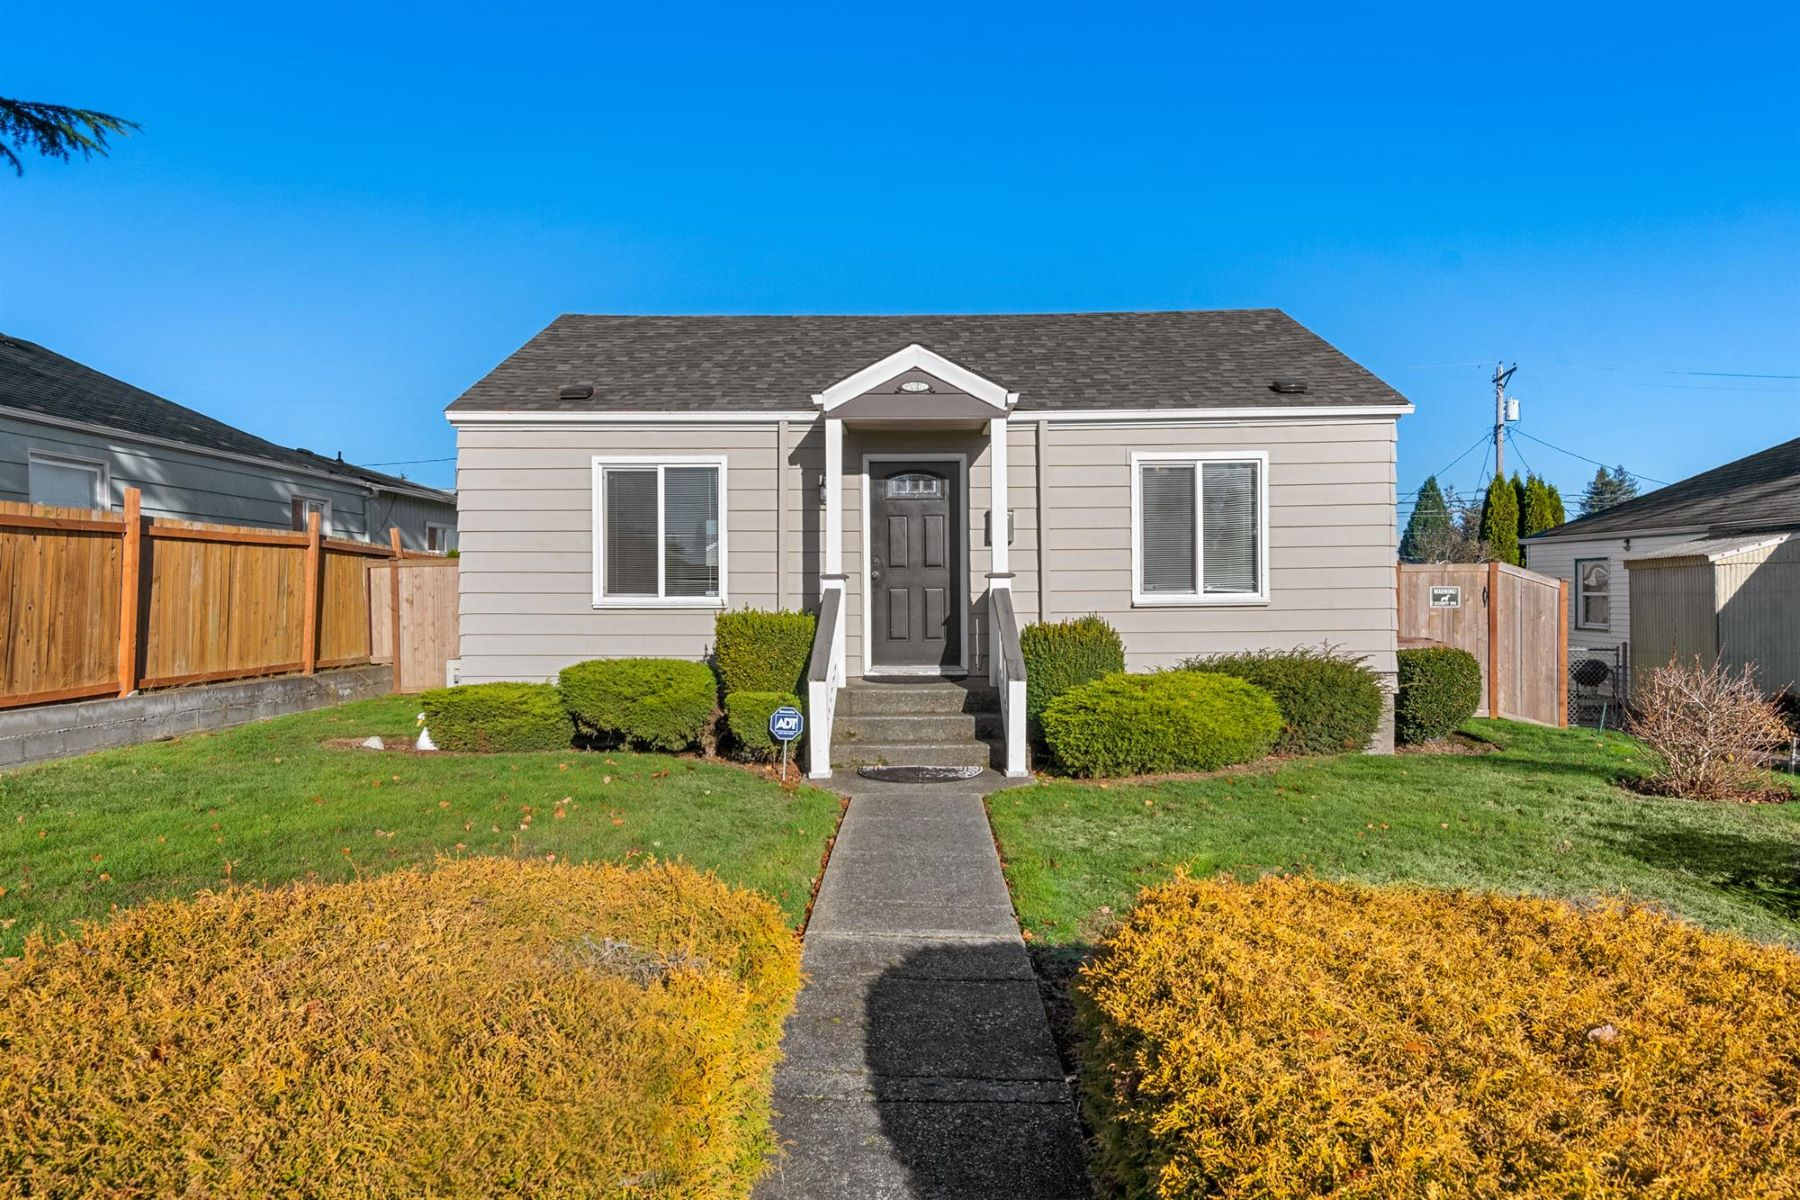 Single Family Home for Active at 821 62nd St, Tacoma 821 E 62nd St Tacoma, Washington 98404 United States